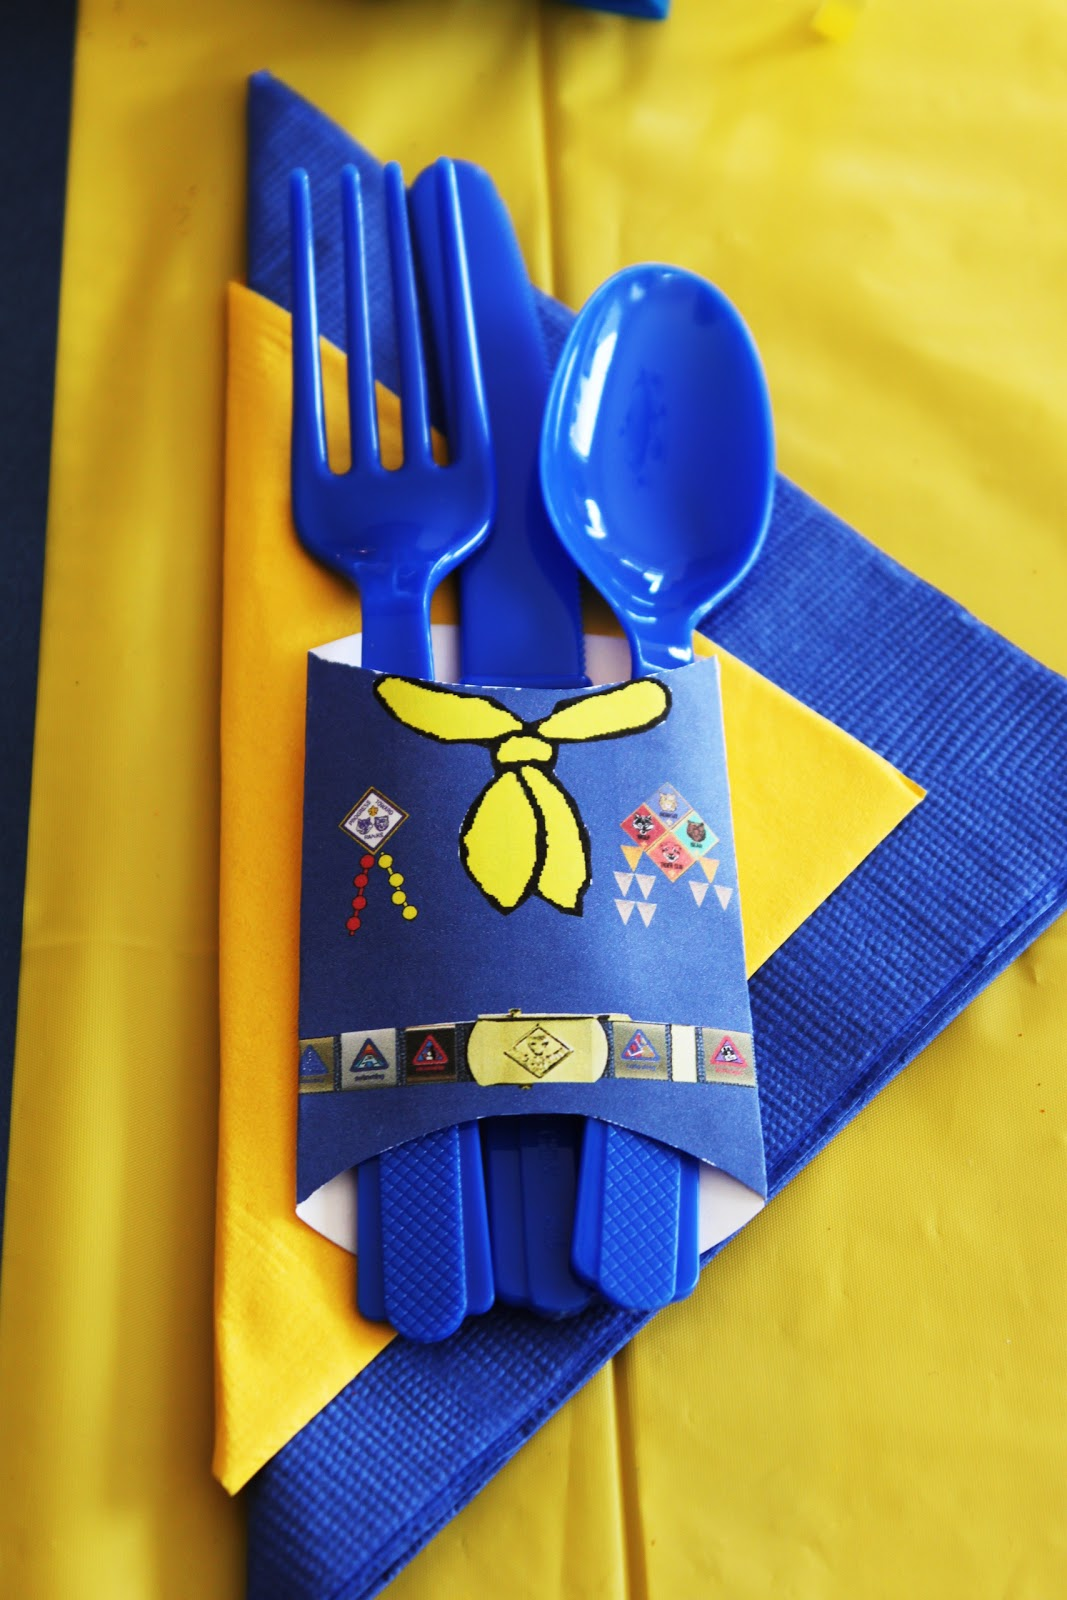 Cub Scout Christmas Party Ideas Part - 47: Blue U0026 Gold Banquet Dinner Silverware Holder Printable Idea - Napkin Holder  - Decoration